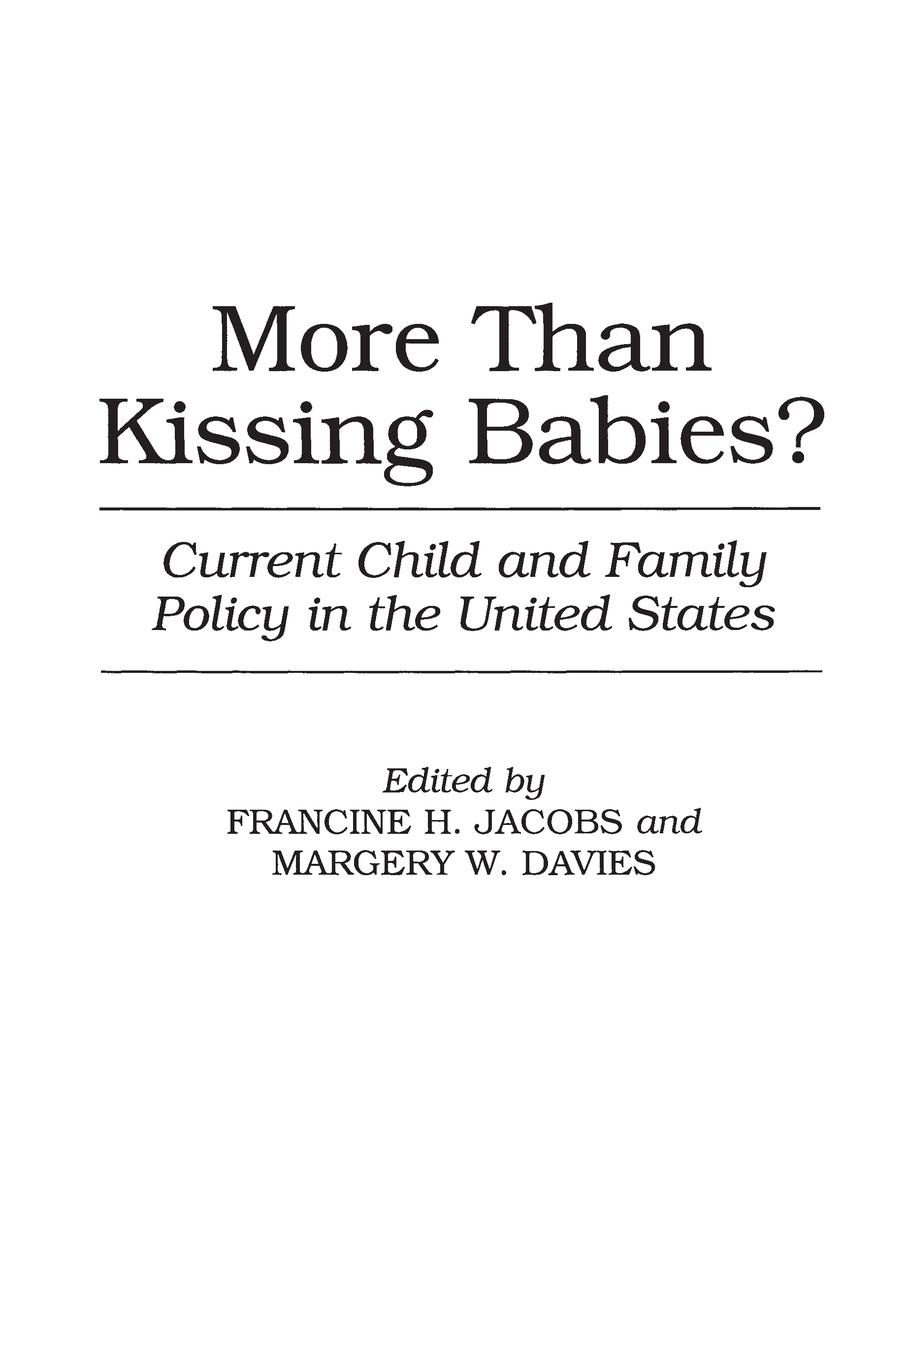 Margery Davies, Francine Jacobs More Than Kissing Babies? Current Child and Family Policy in the United States